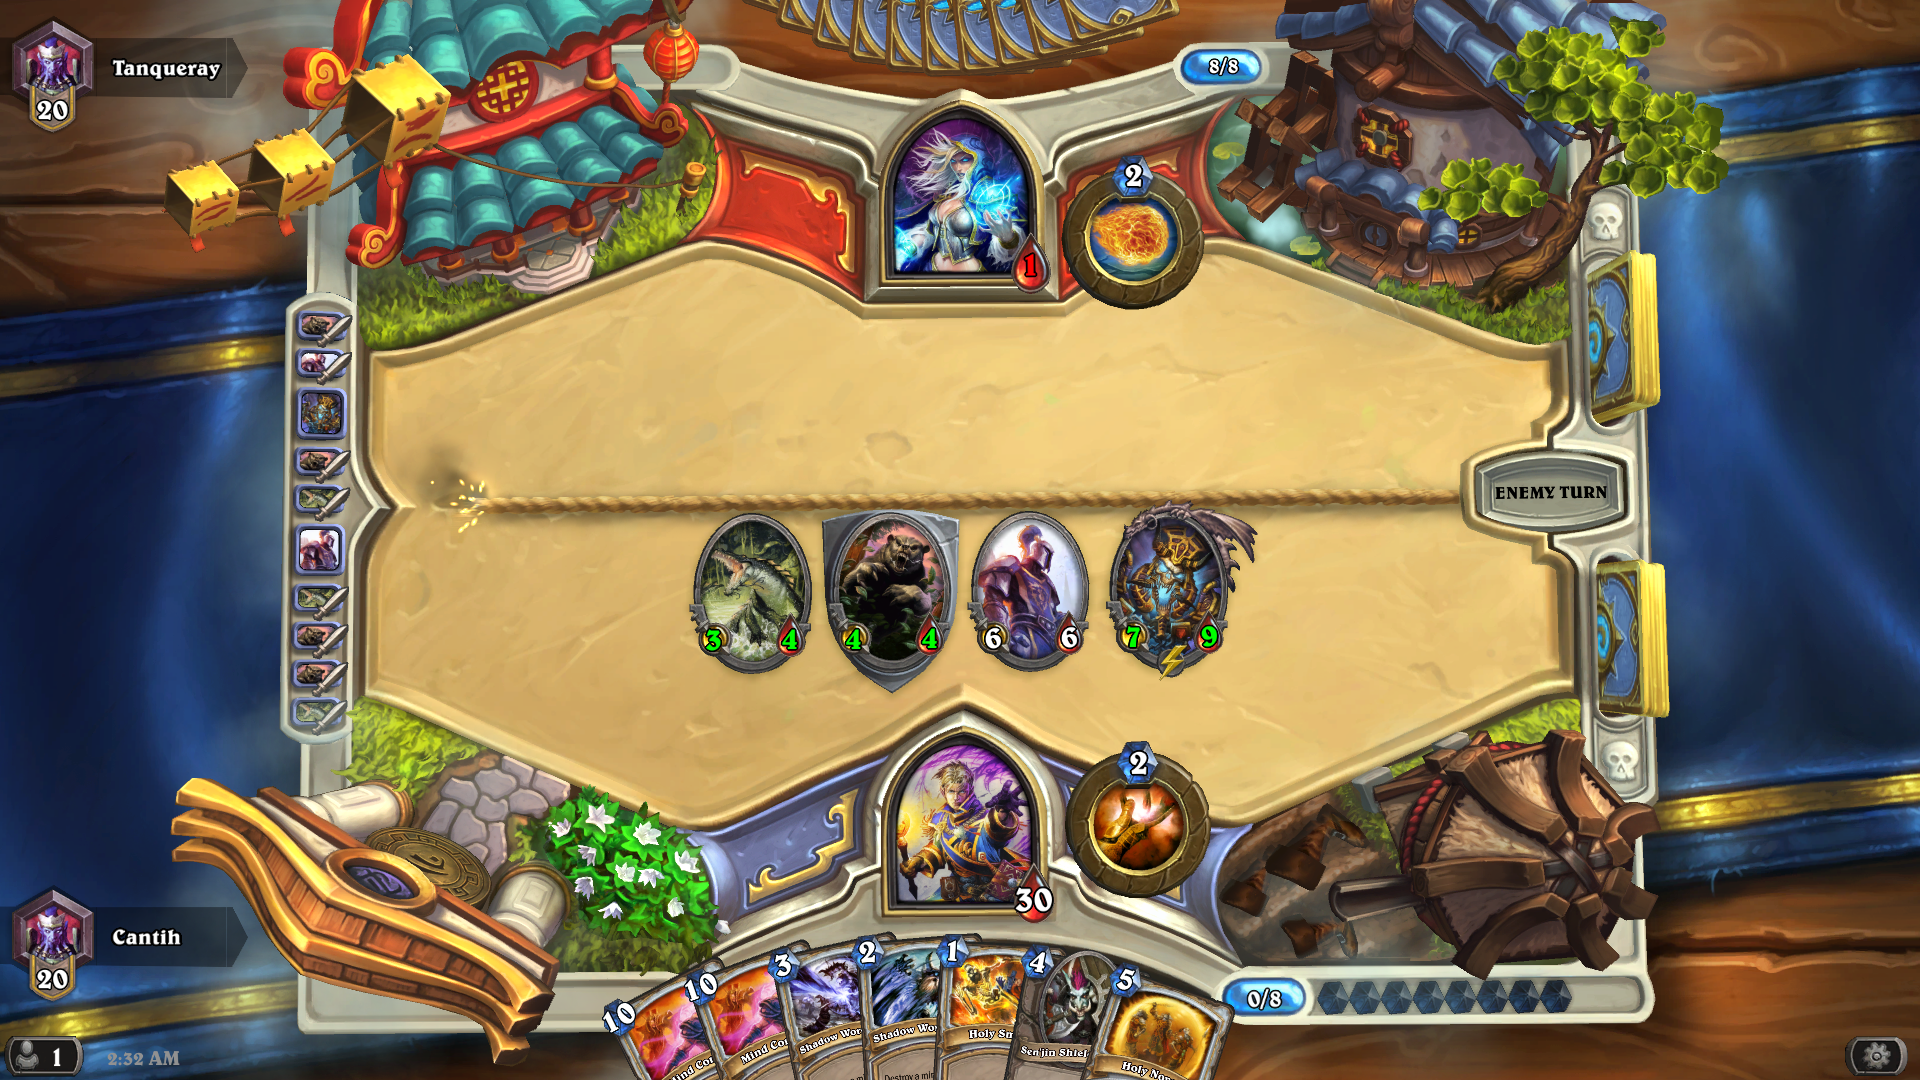 cantih games easy super with cheese decks heroic beating naxx here brag about hearthstone